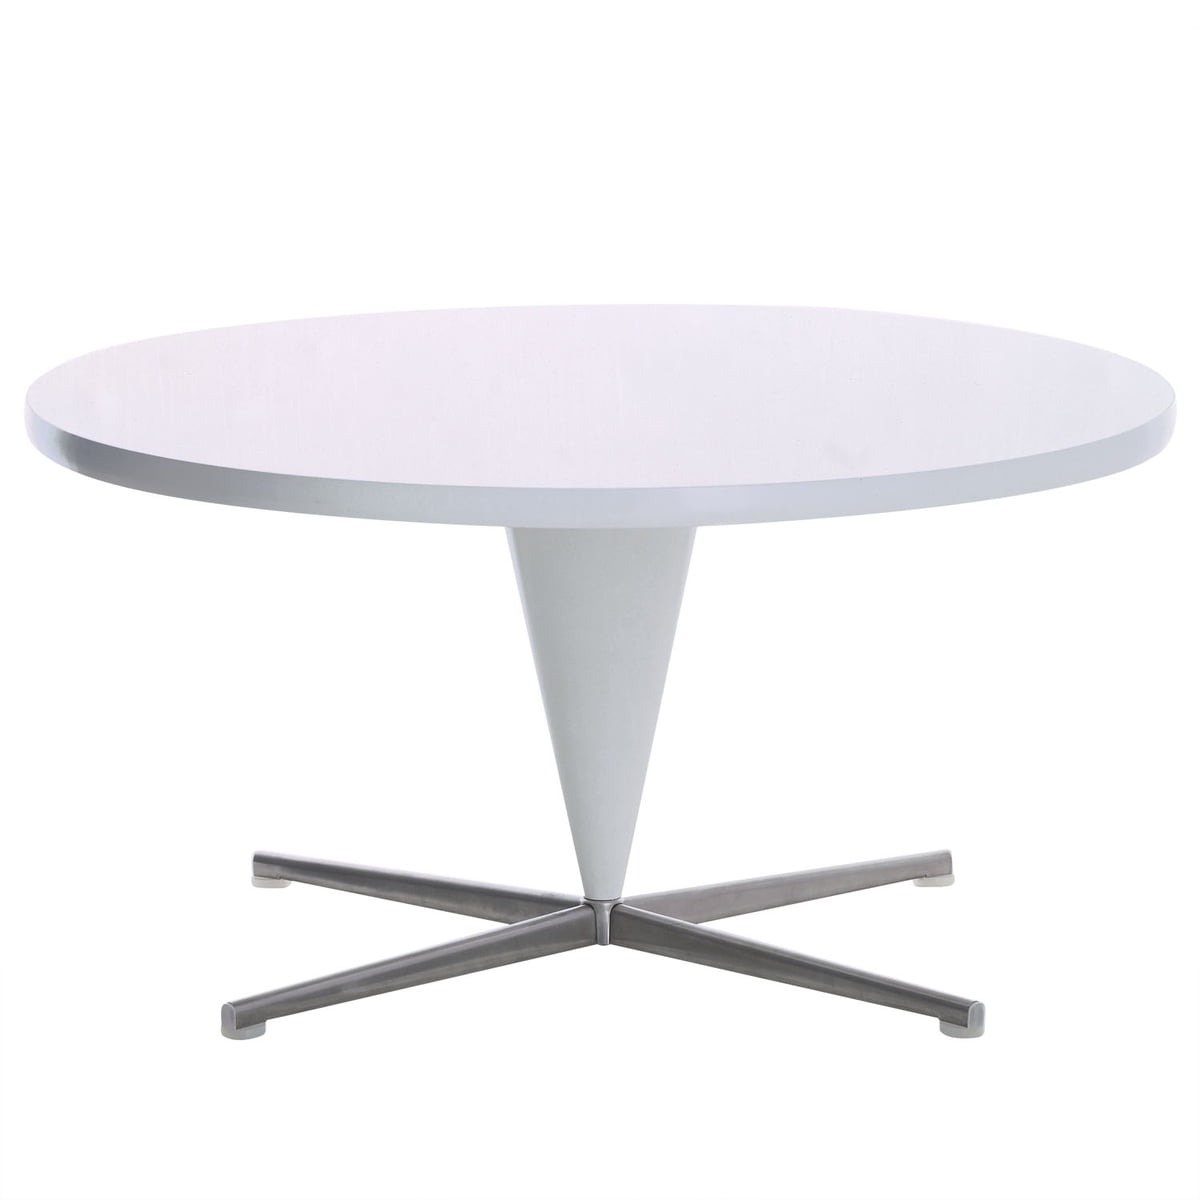 Cone Table, weiß